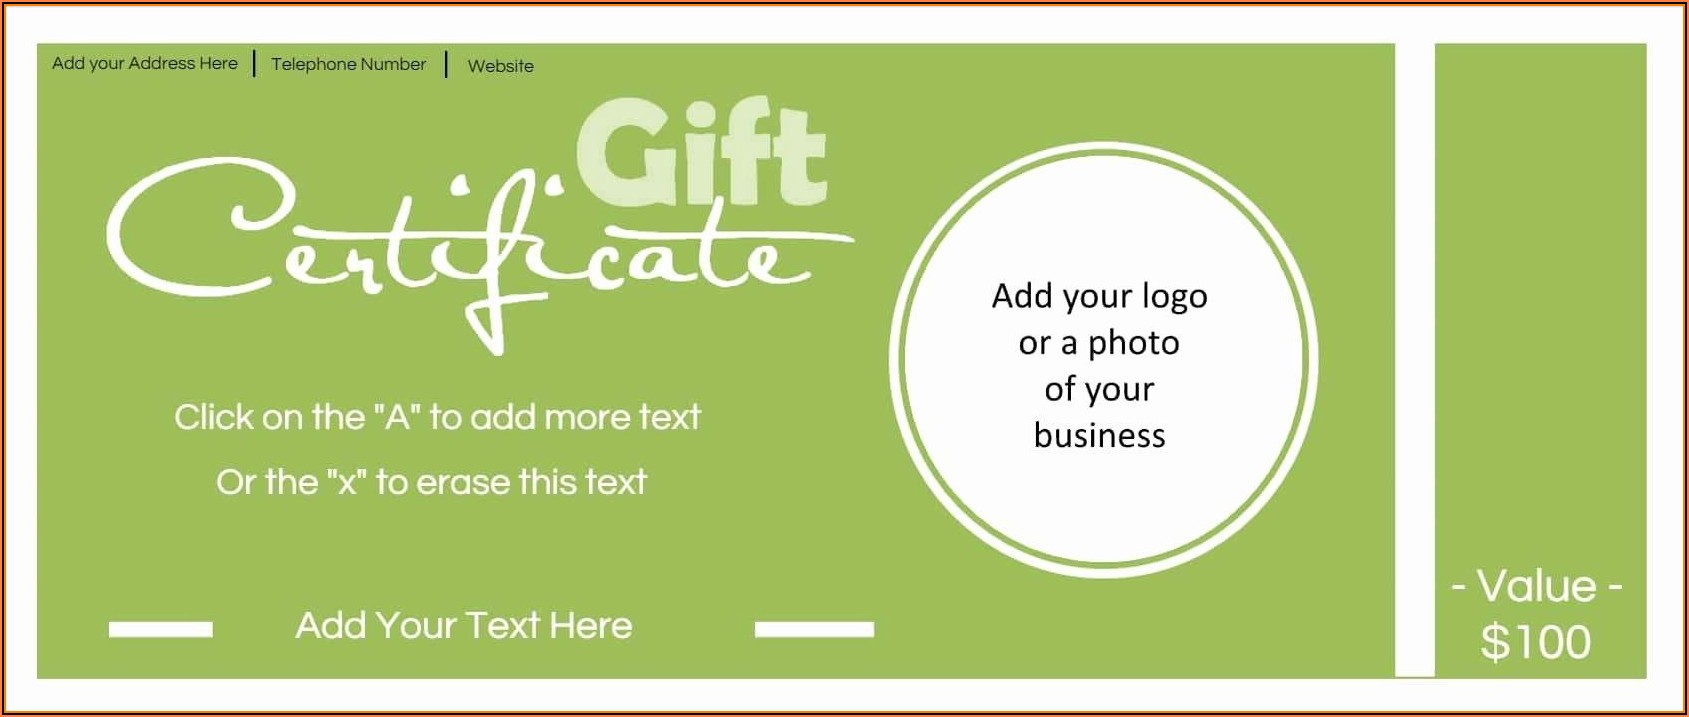 Free Gift Certificate Template With Logo